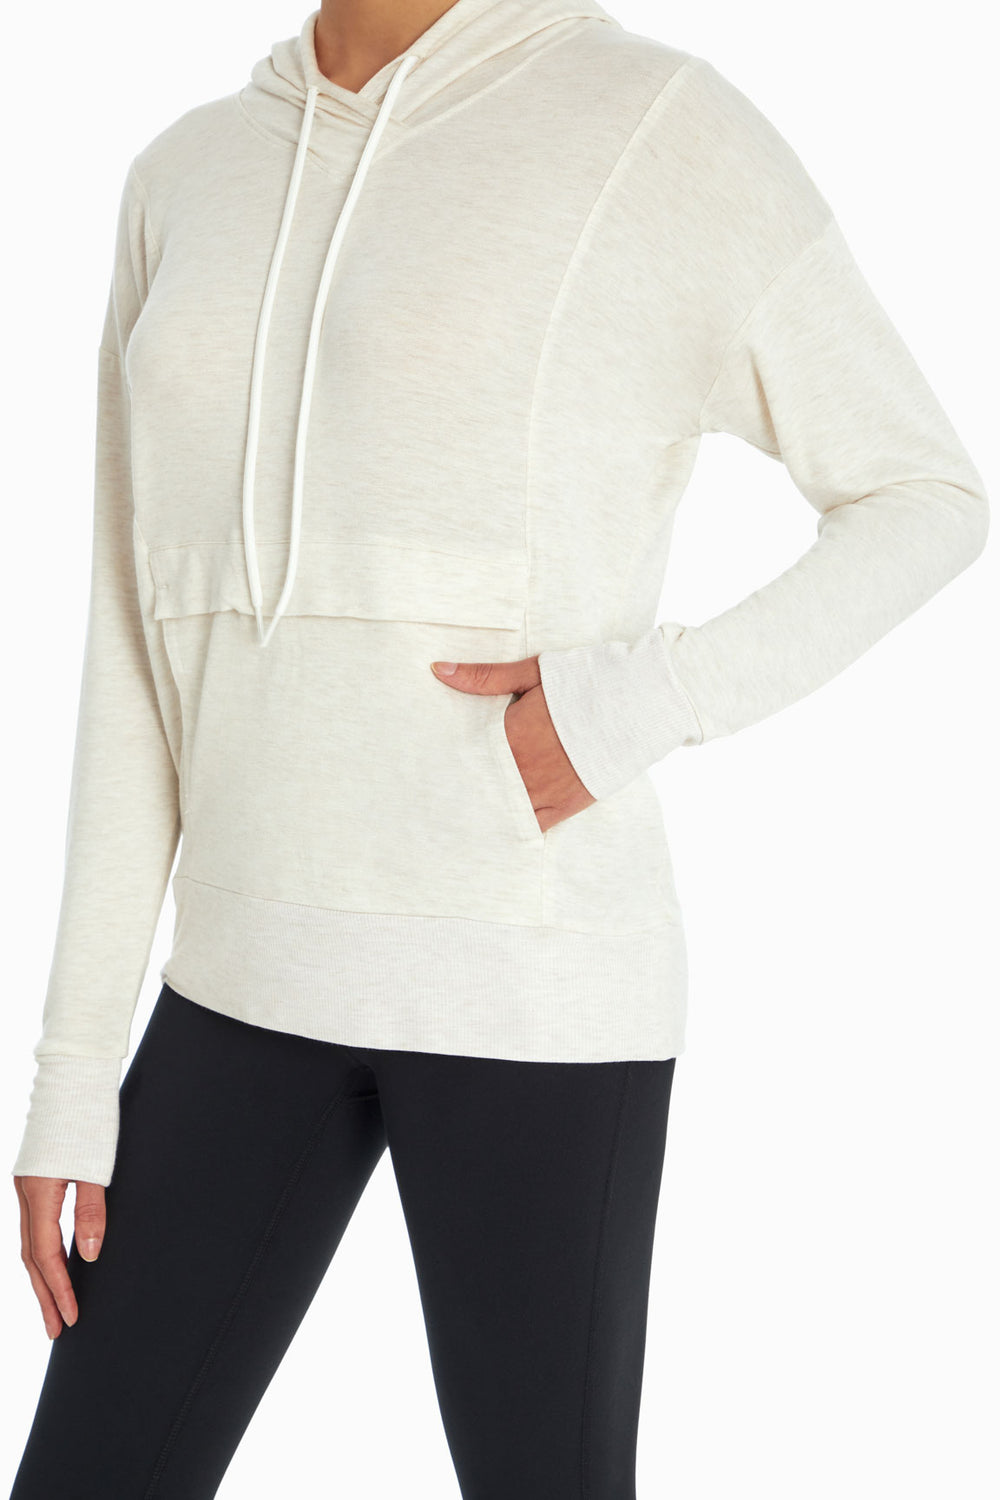 3-Pack Marika Balance Collection Gaia Hoodie